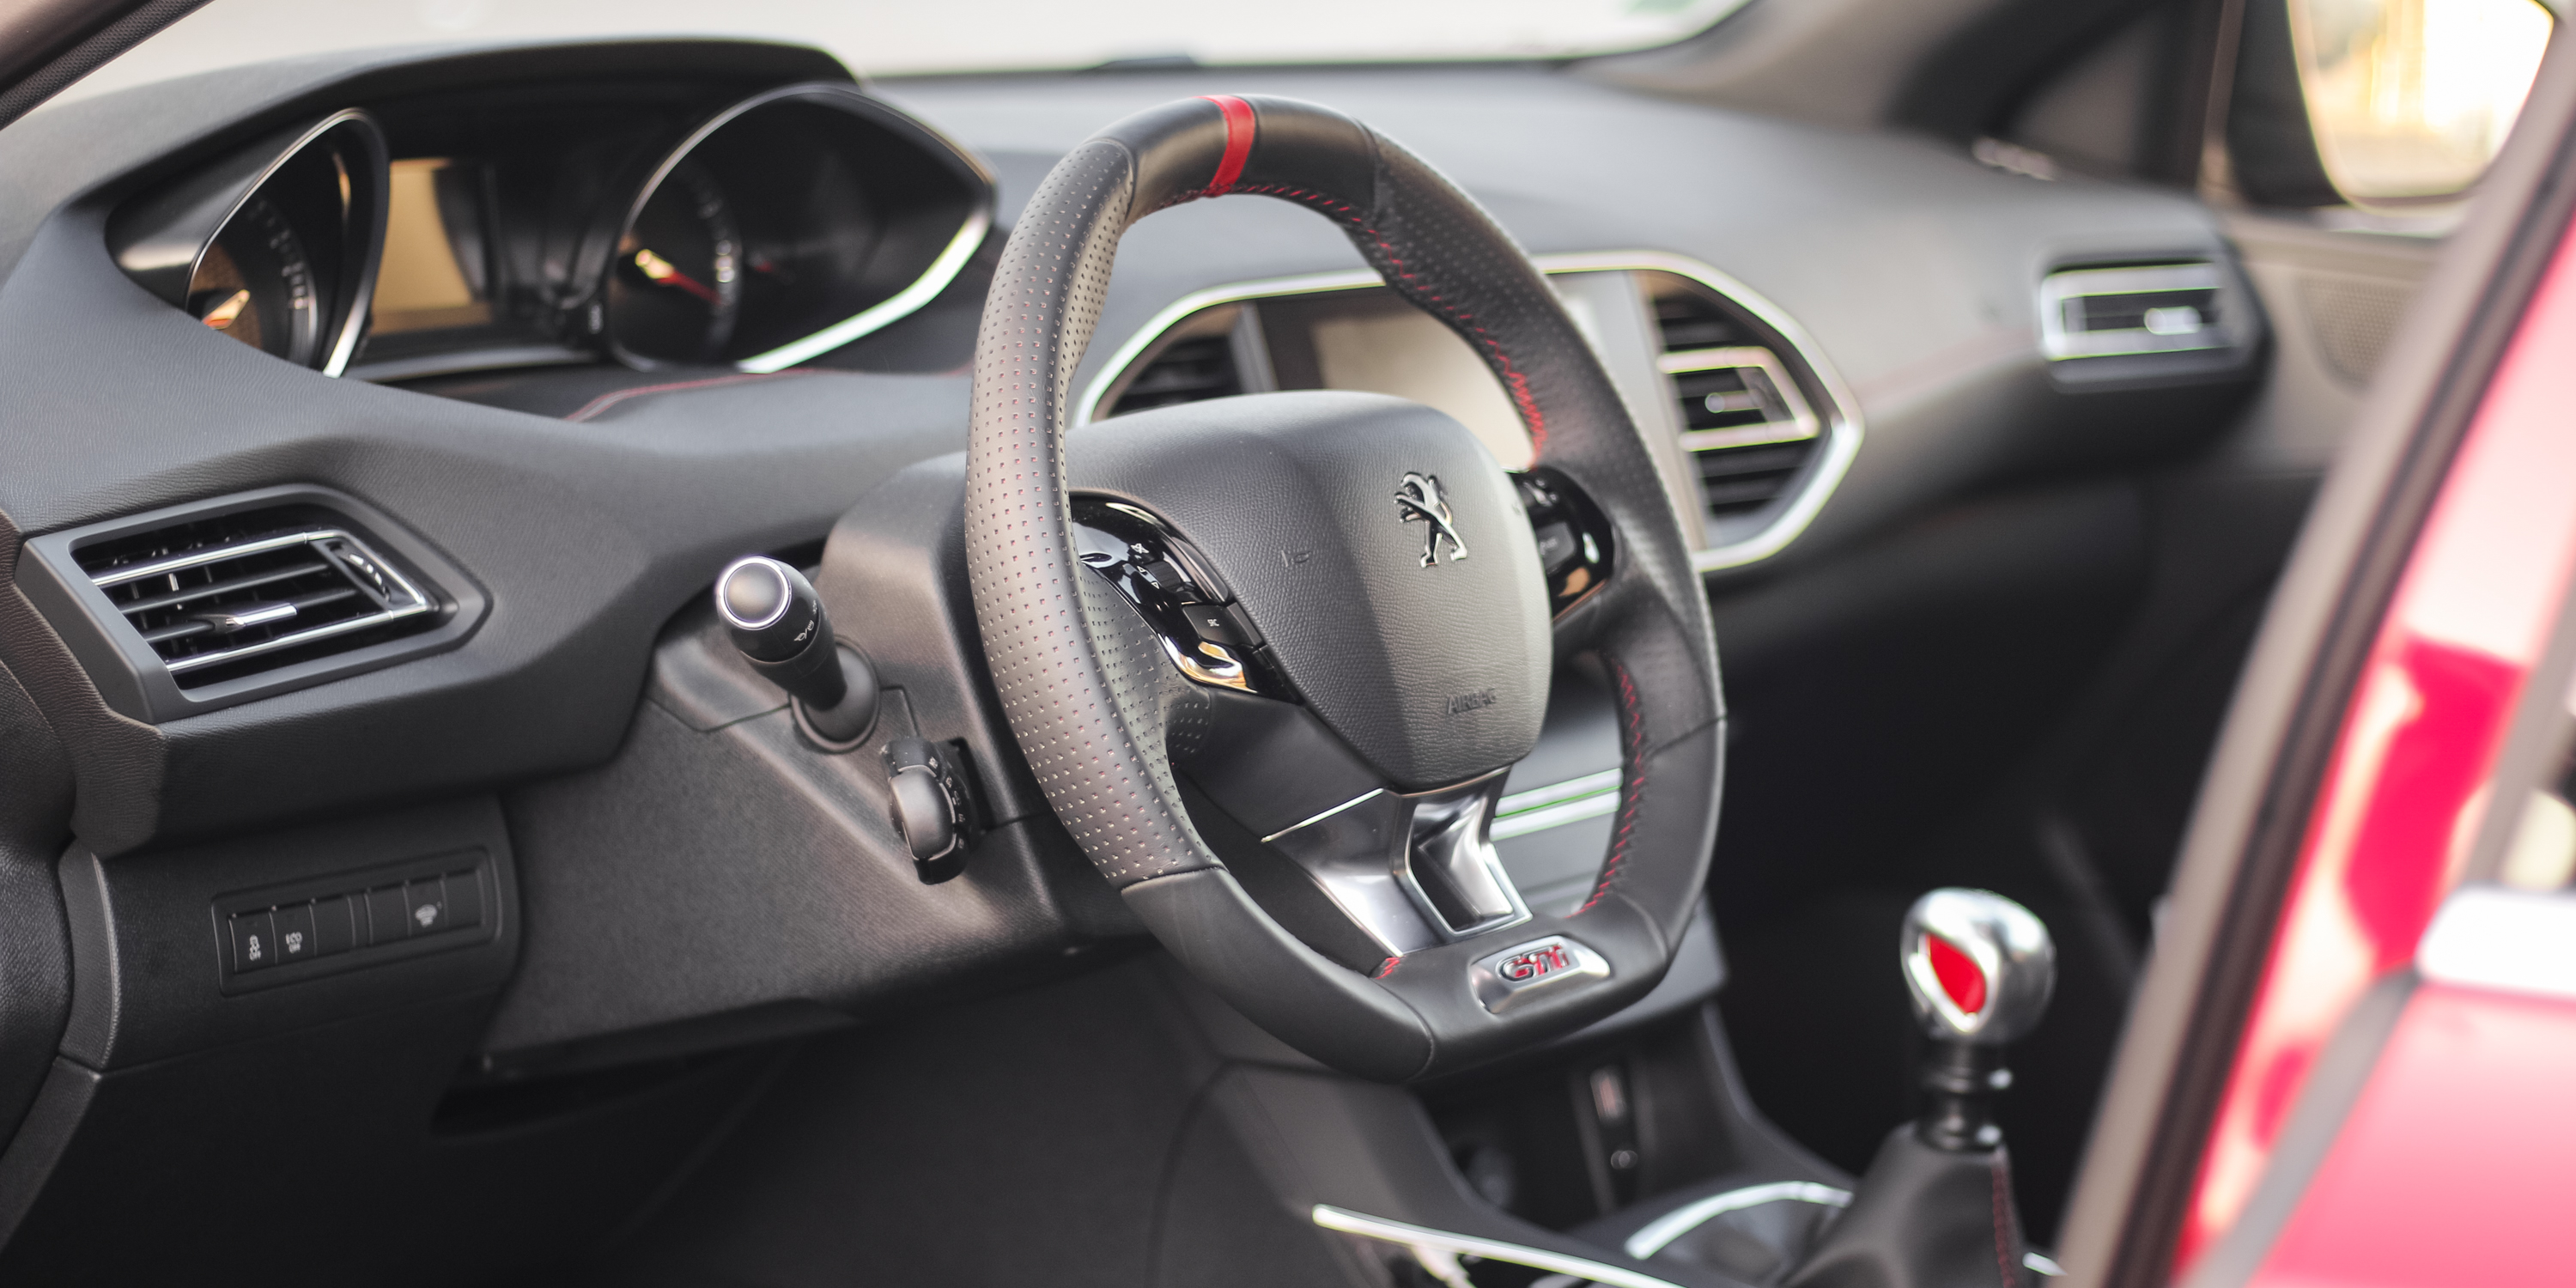 2016 Peugeot 308 Gti Steering Wheel (Photo 12 of 15)